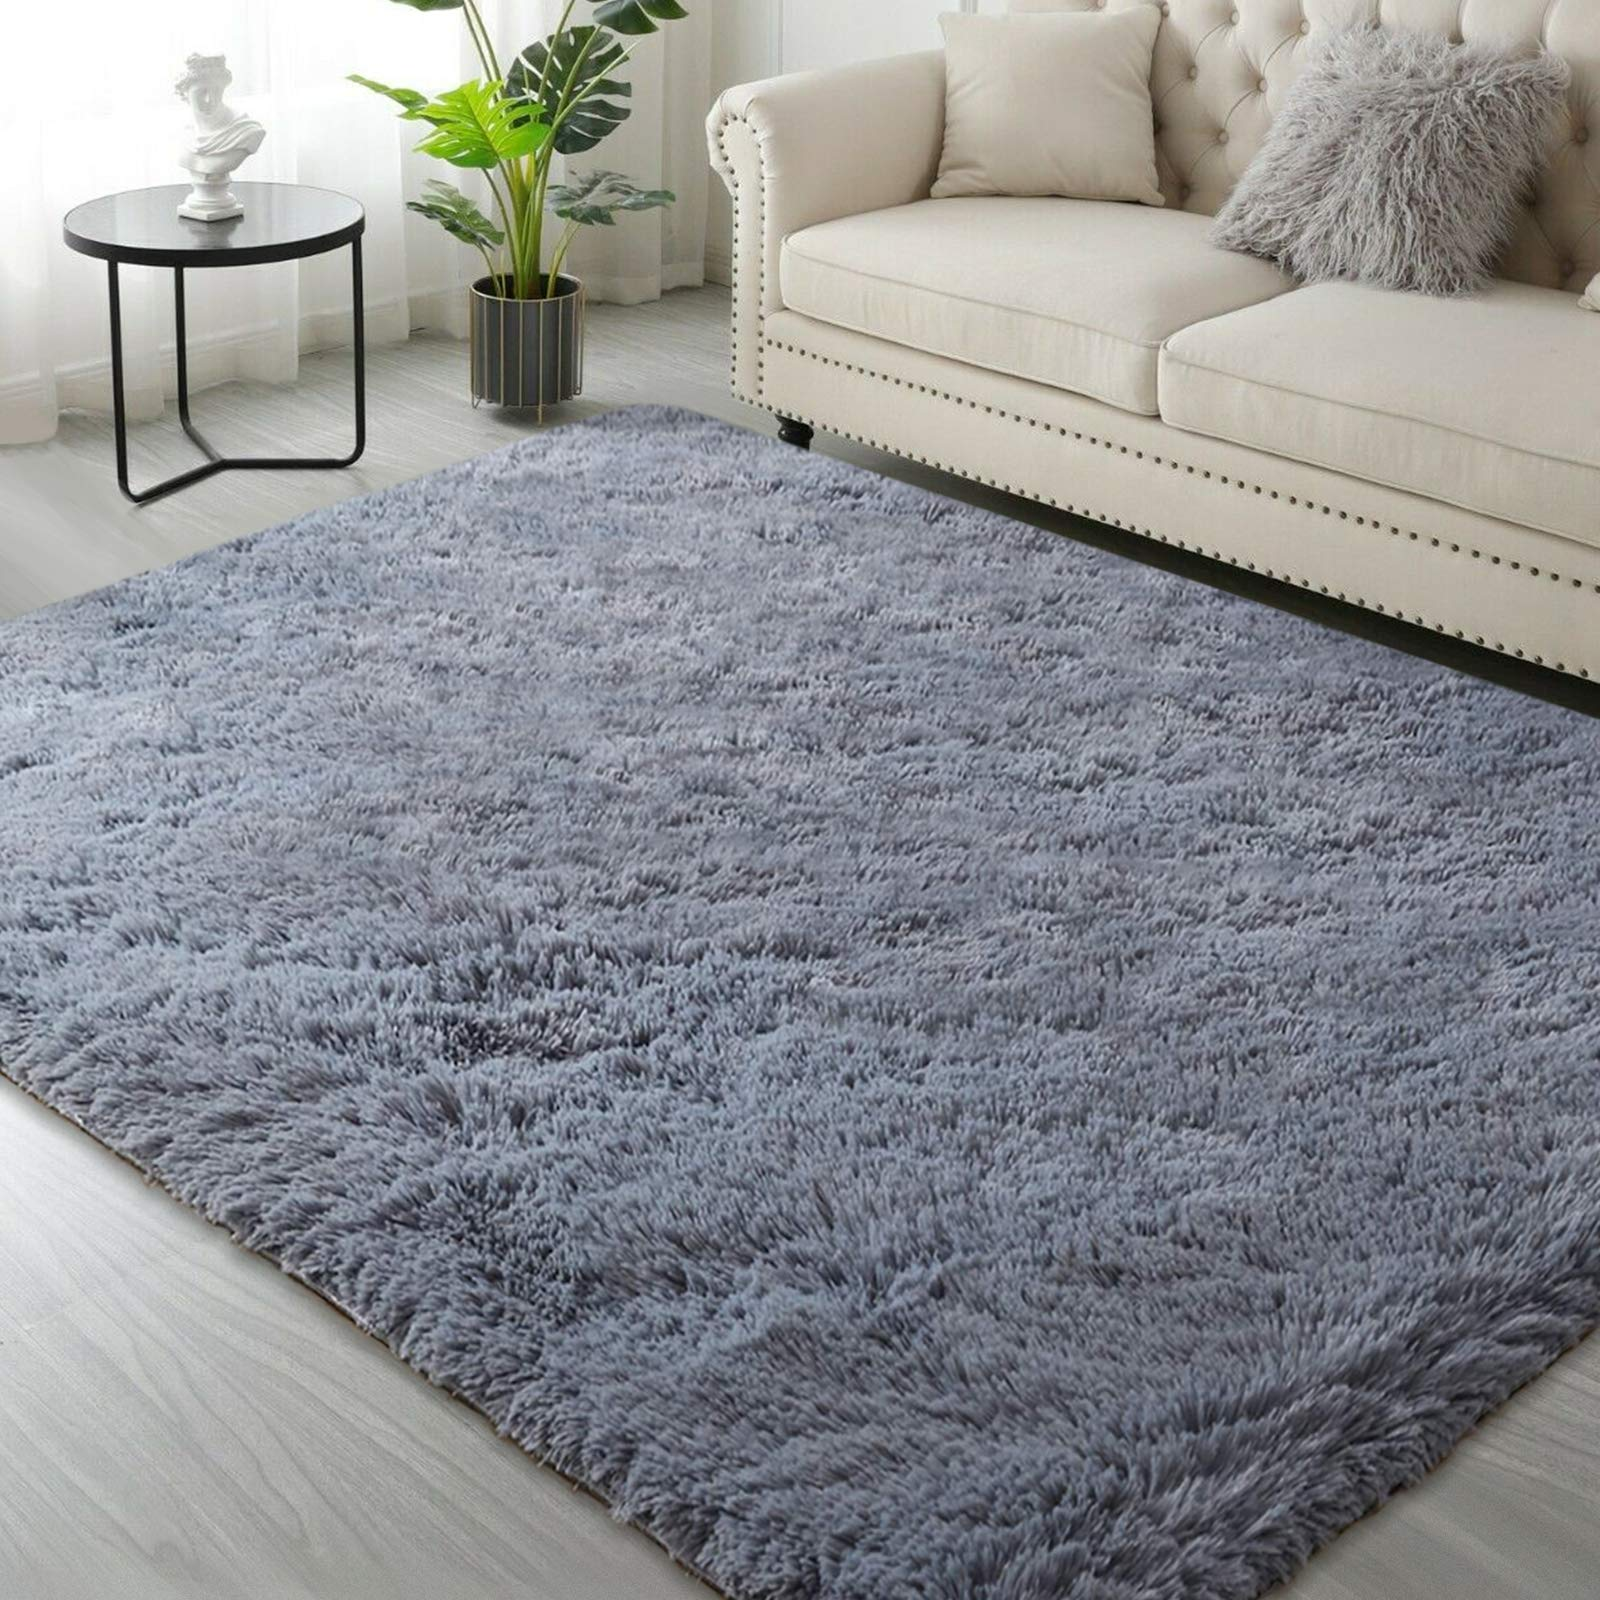 Area Rug Modern Carpet 4×6 Area Rug Fluffy Faux Fur Rug Grey